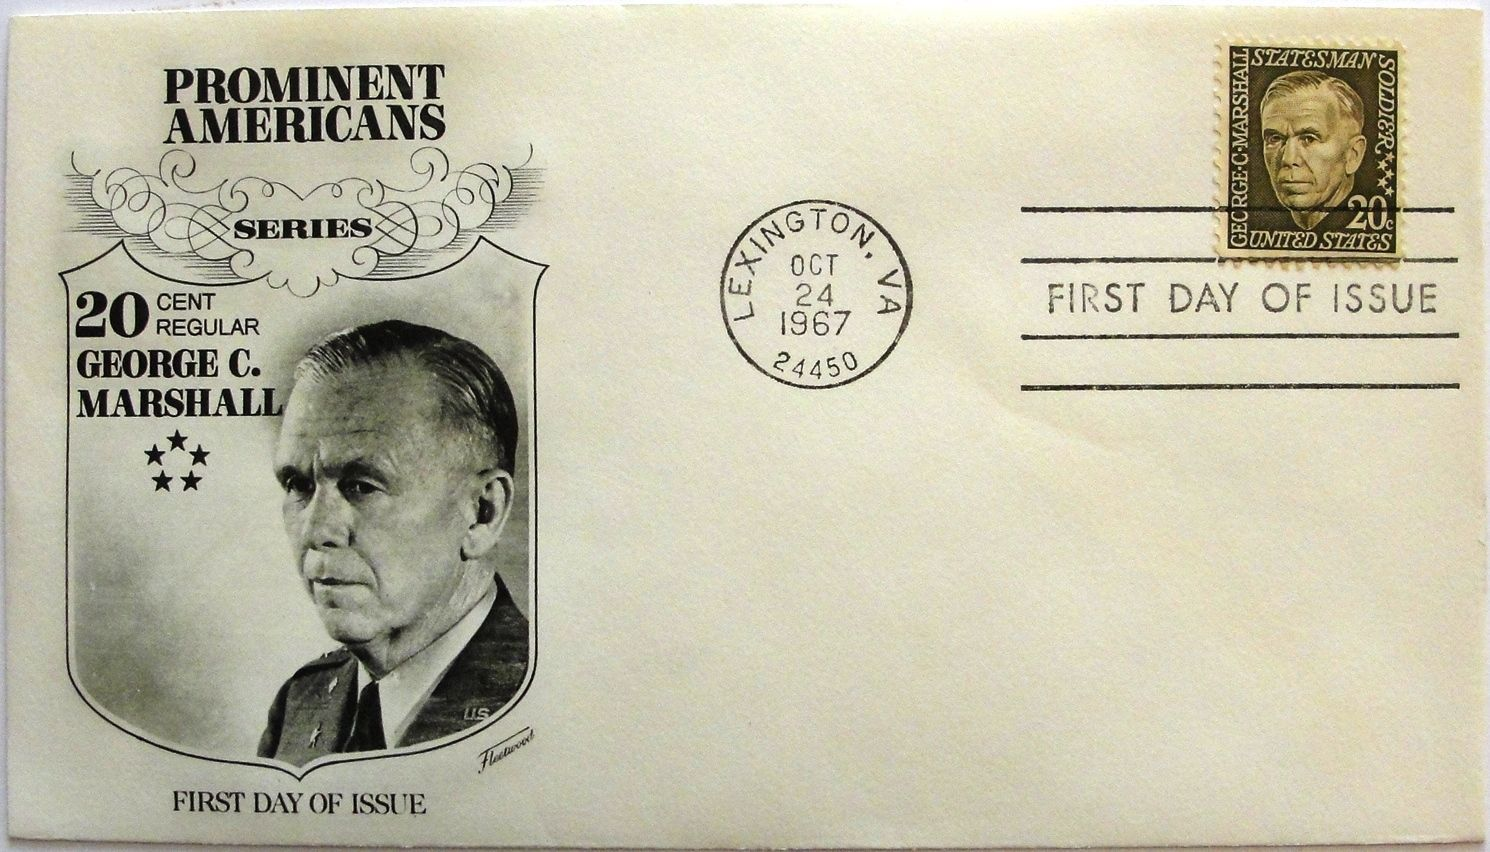 October 24, 1967 First Day of Issue, Fleetwood Cover, George C. Marshall #15